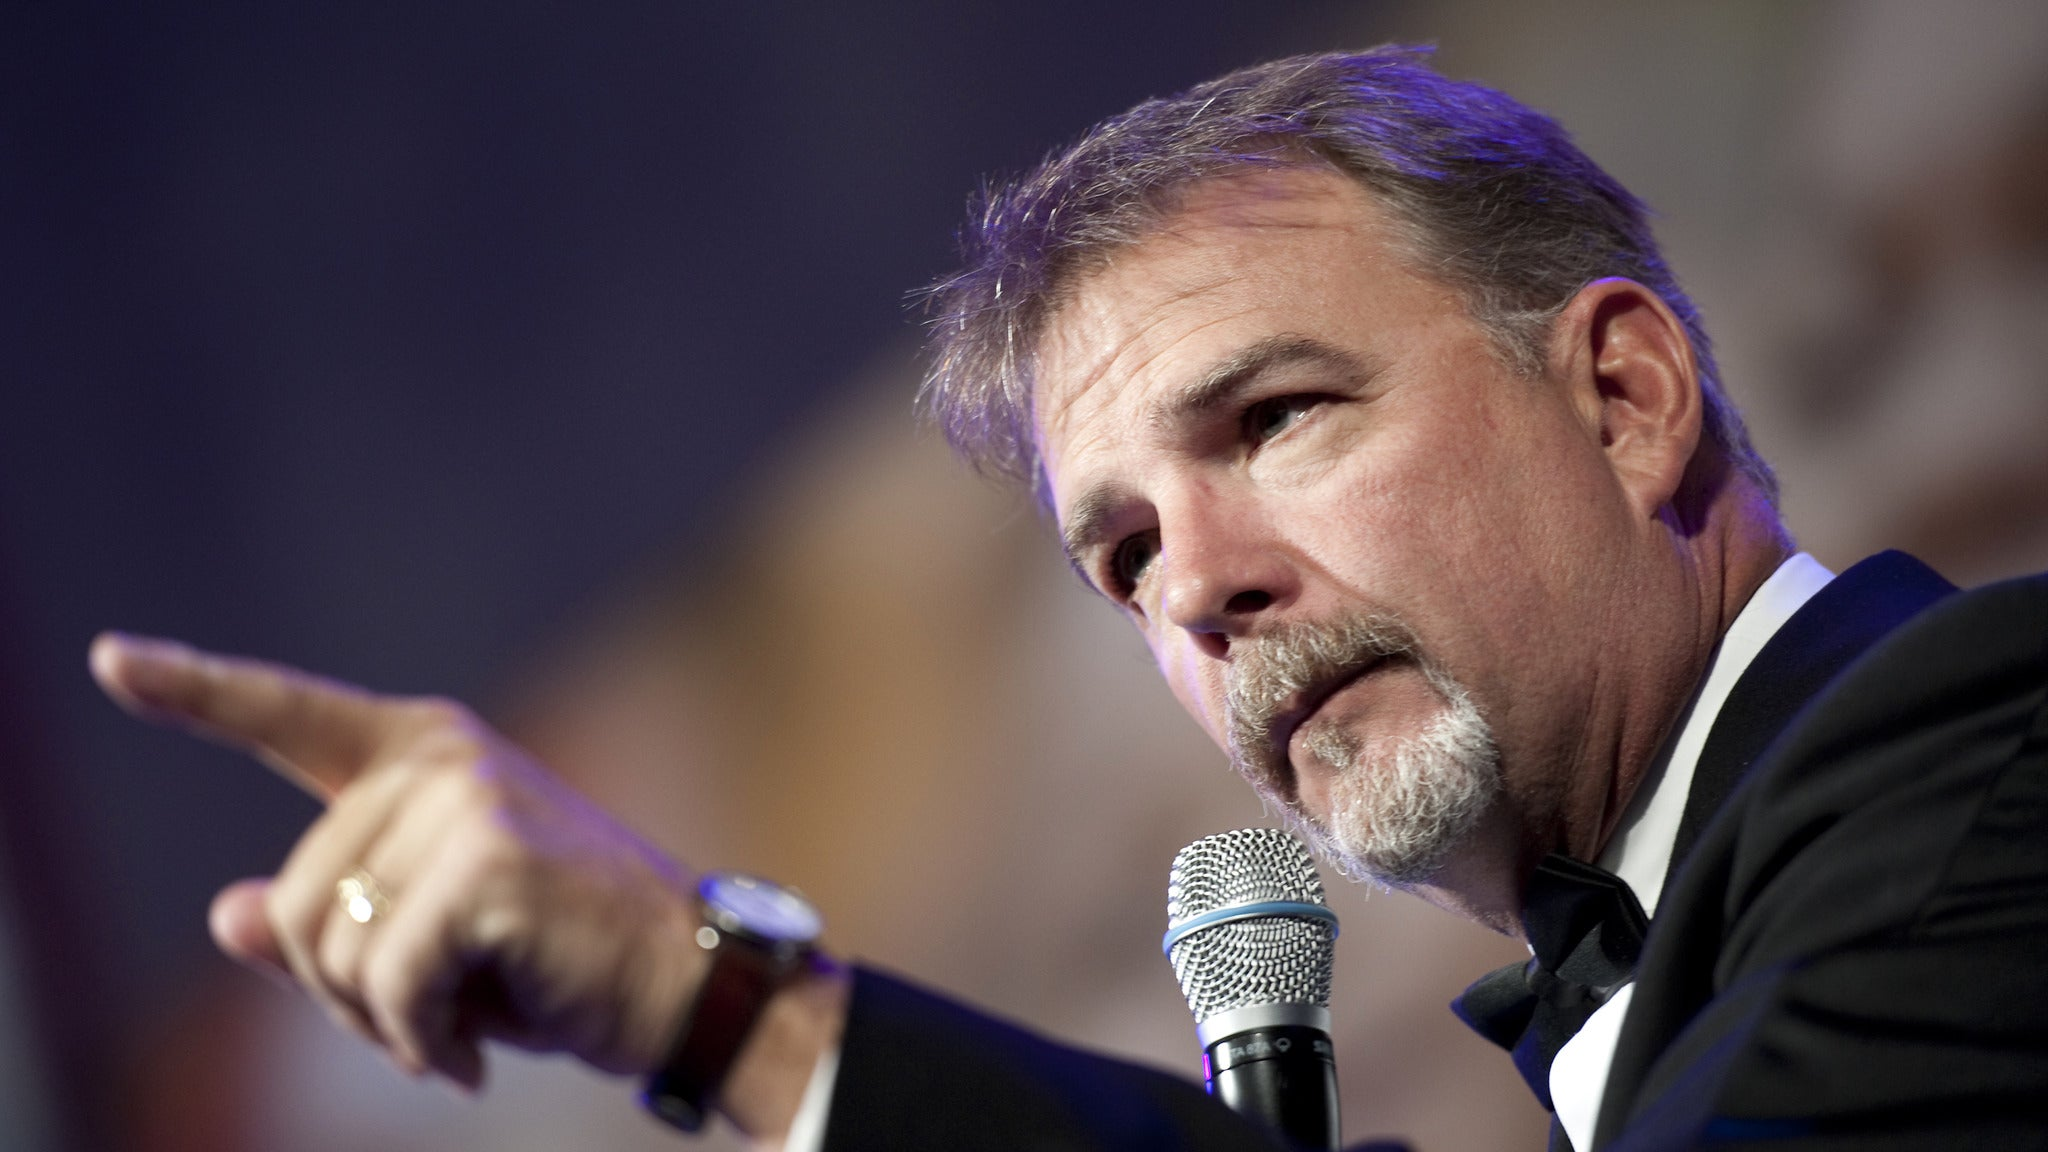 image for event Bill Engvall